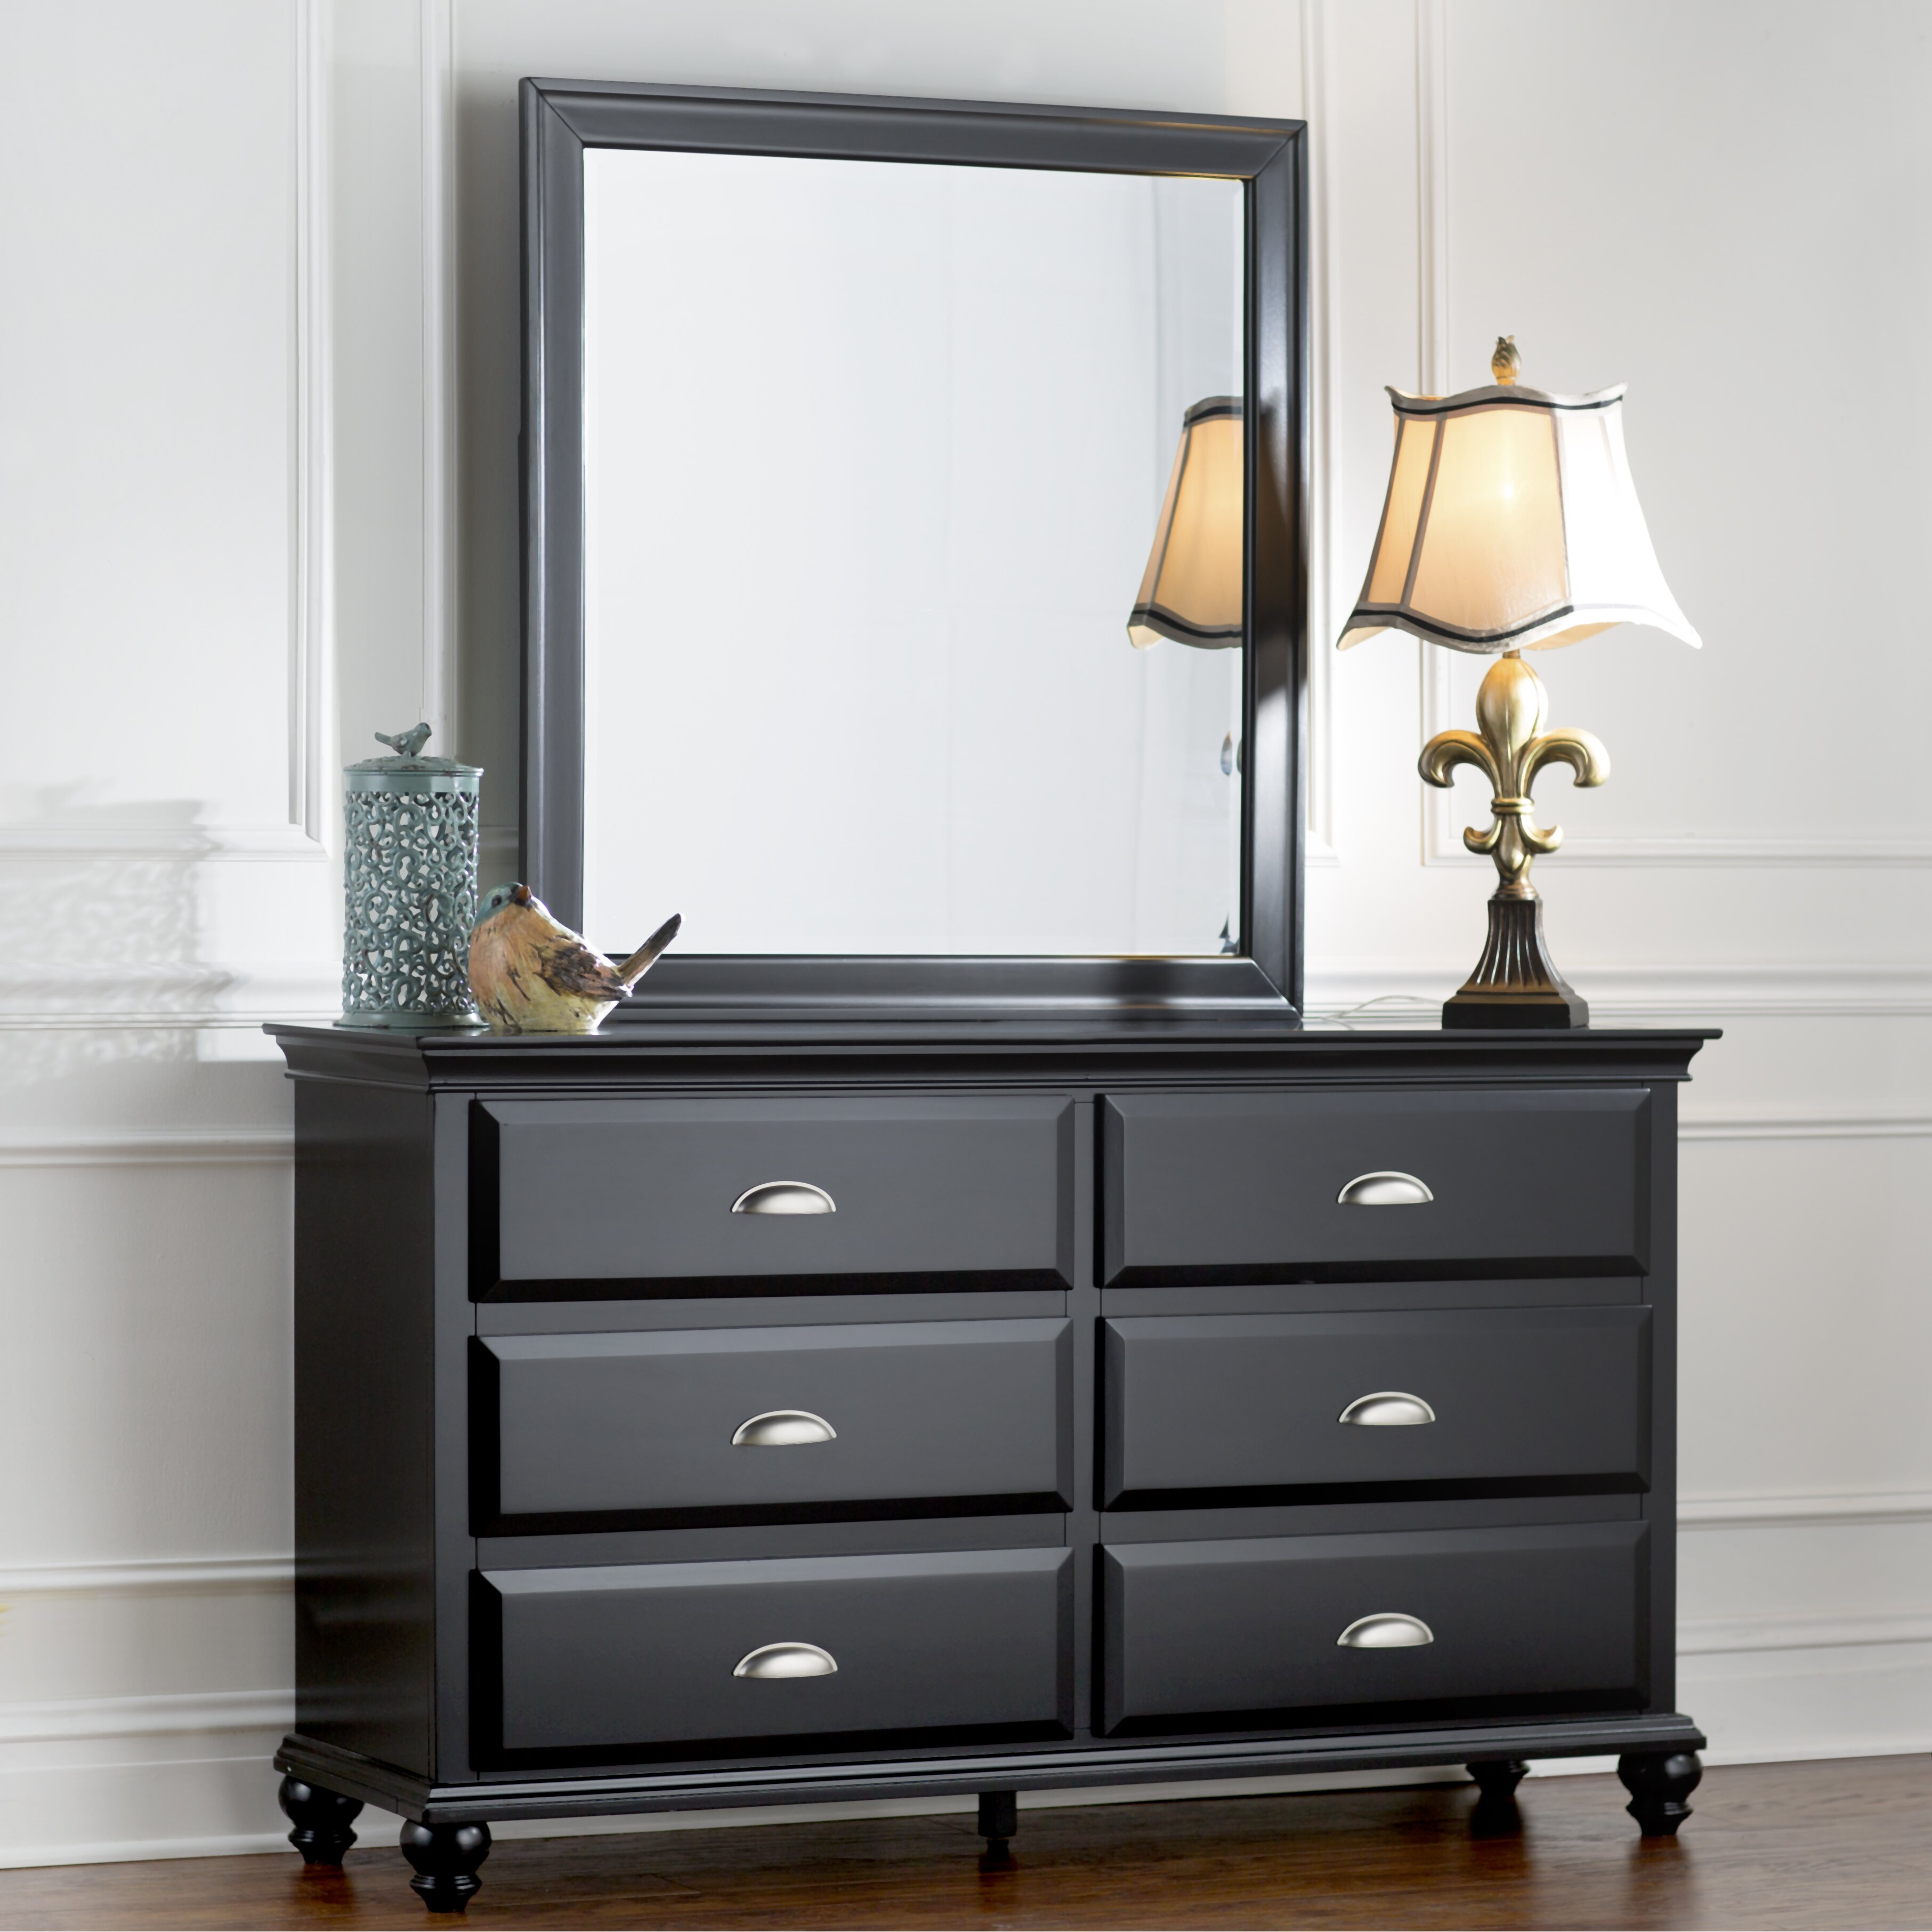 Stand Alone Mirror Bedroom Dresser Mirrors Youll Love Wayfair